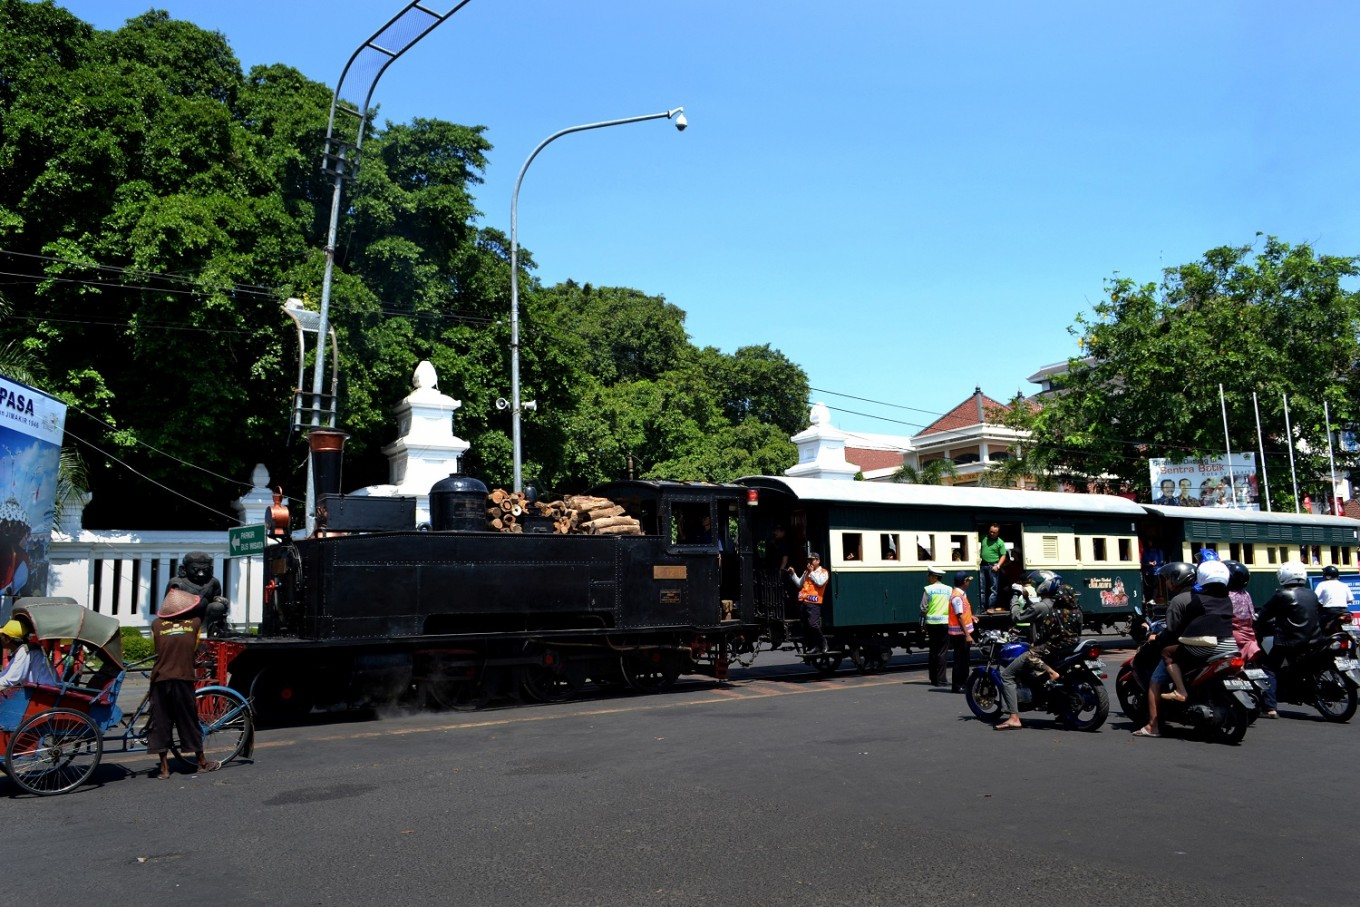 The Jaladara steam train passes Gladag, a batik center in Surakarta, Central Java.